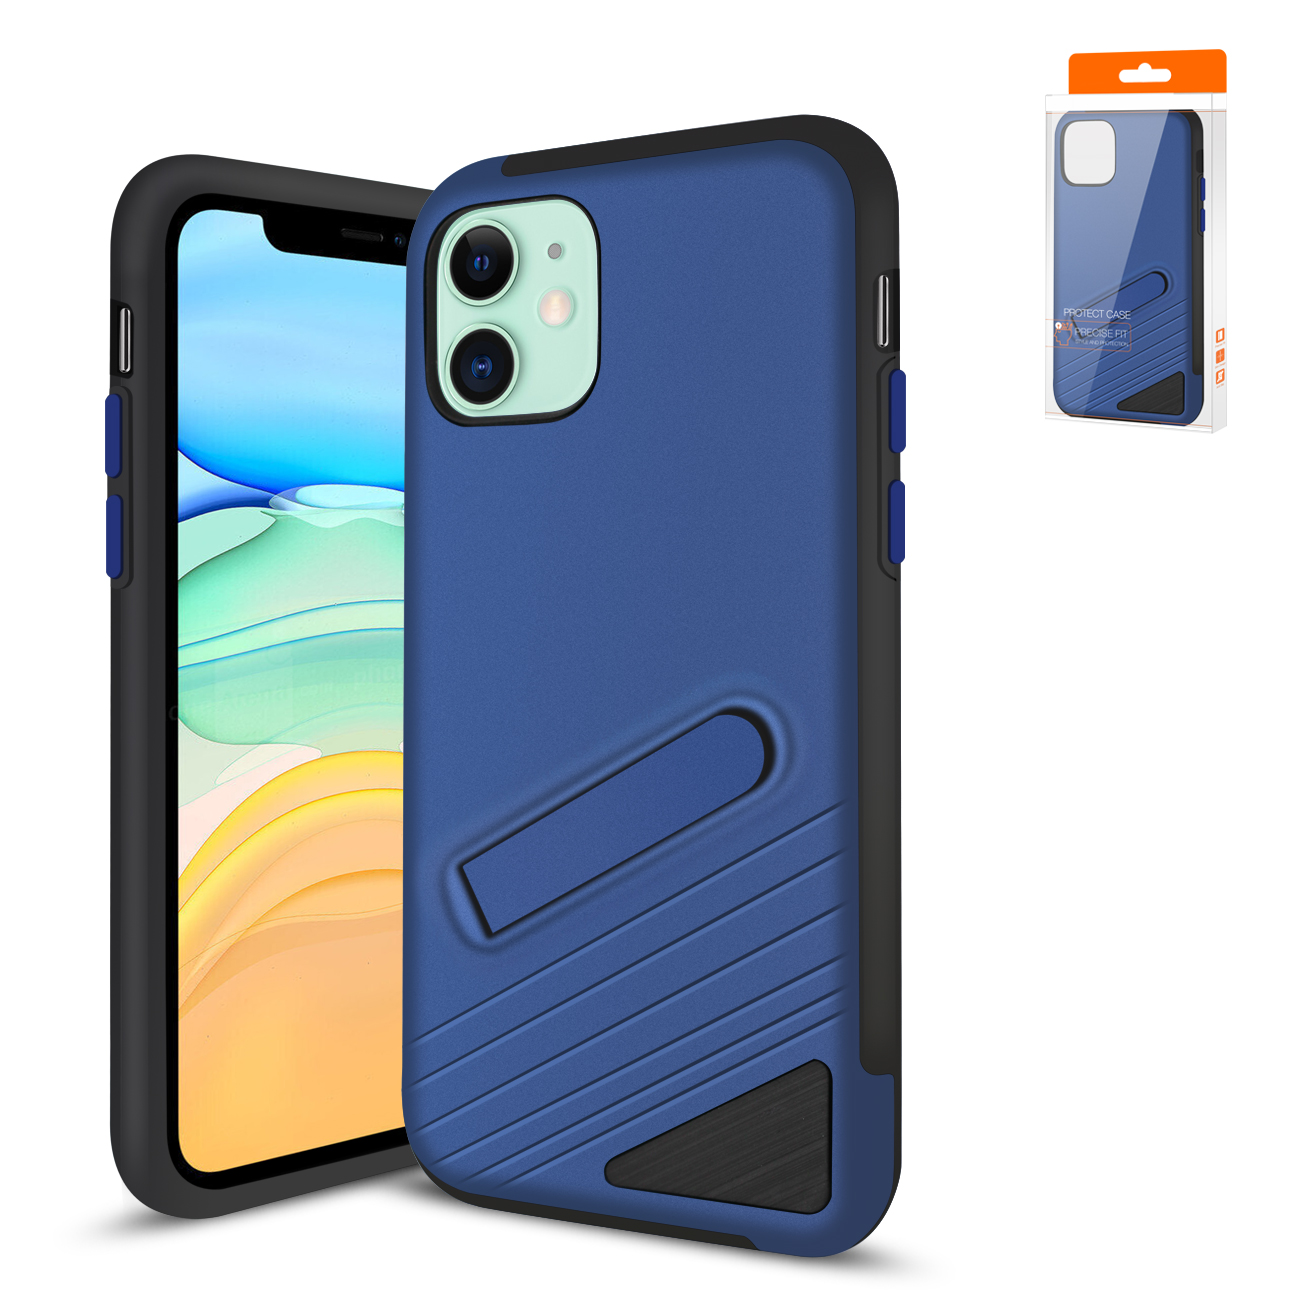 Apple iPhone 11 Armor Cases In Navy